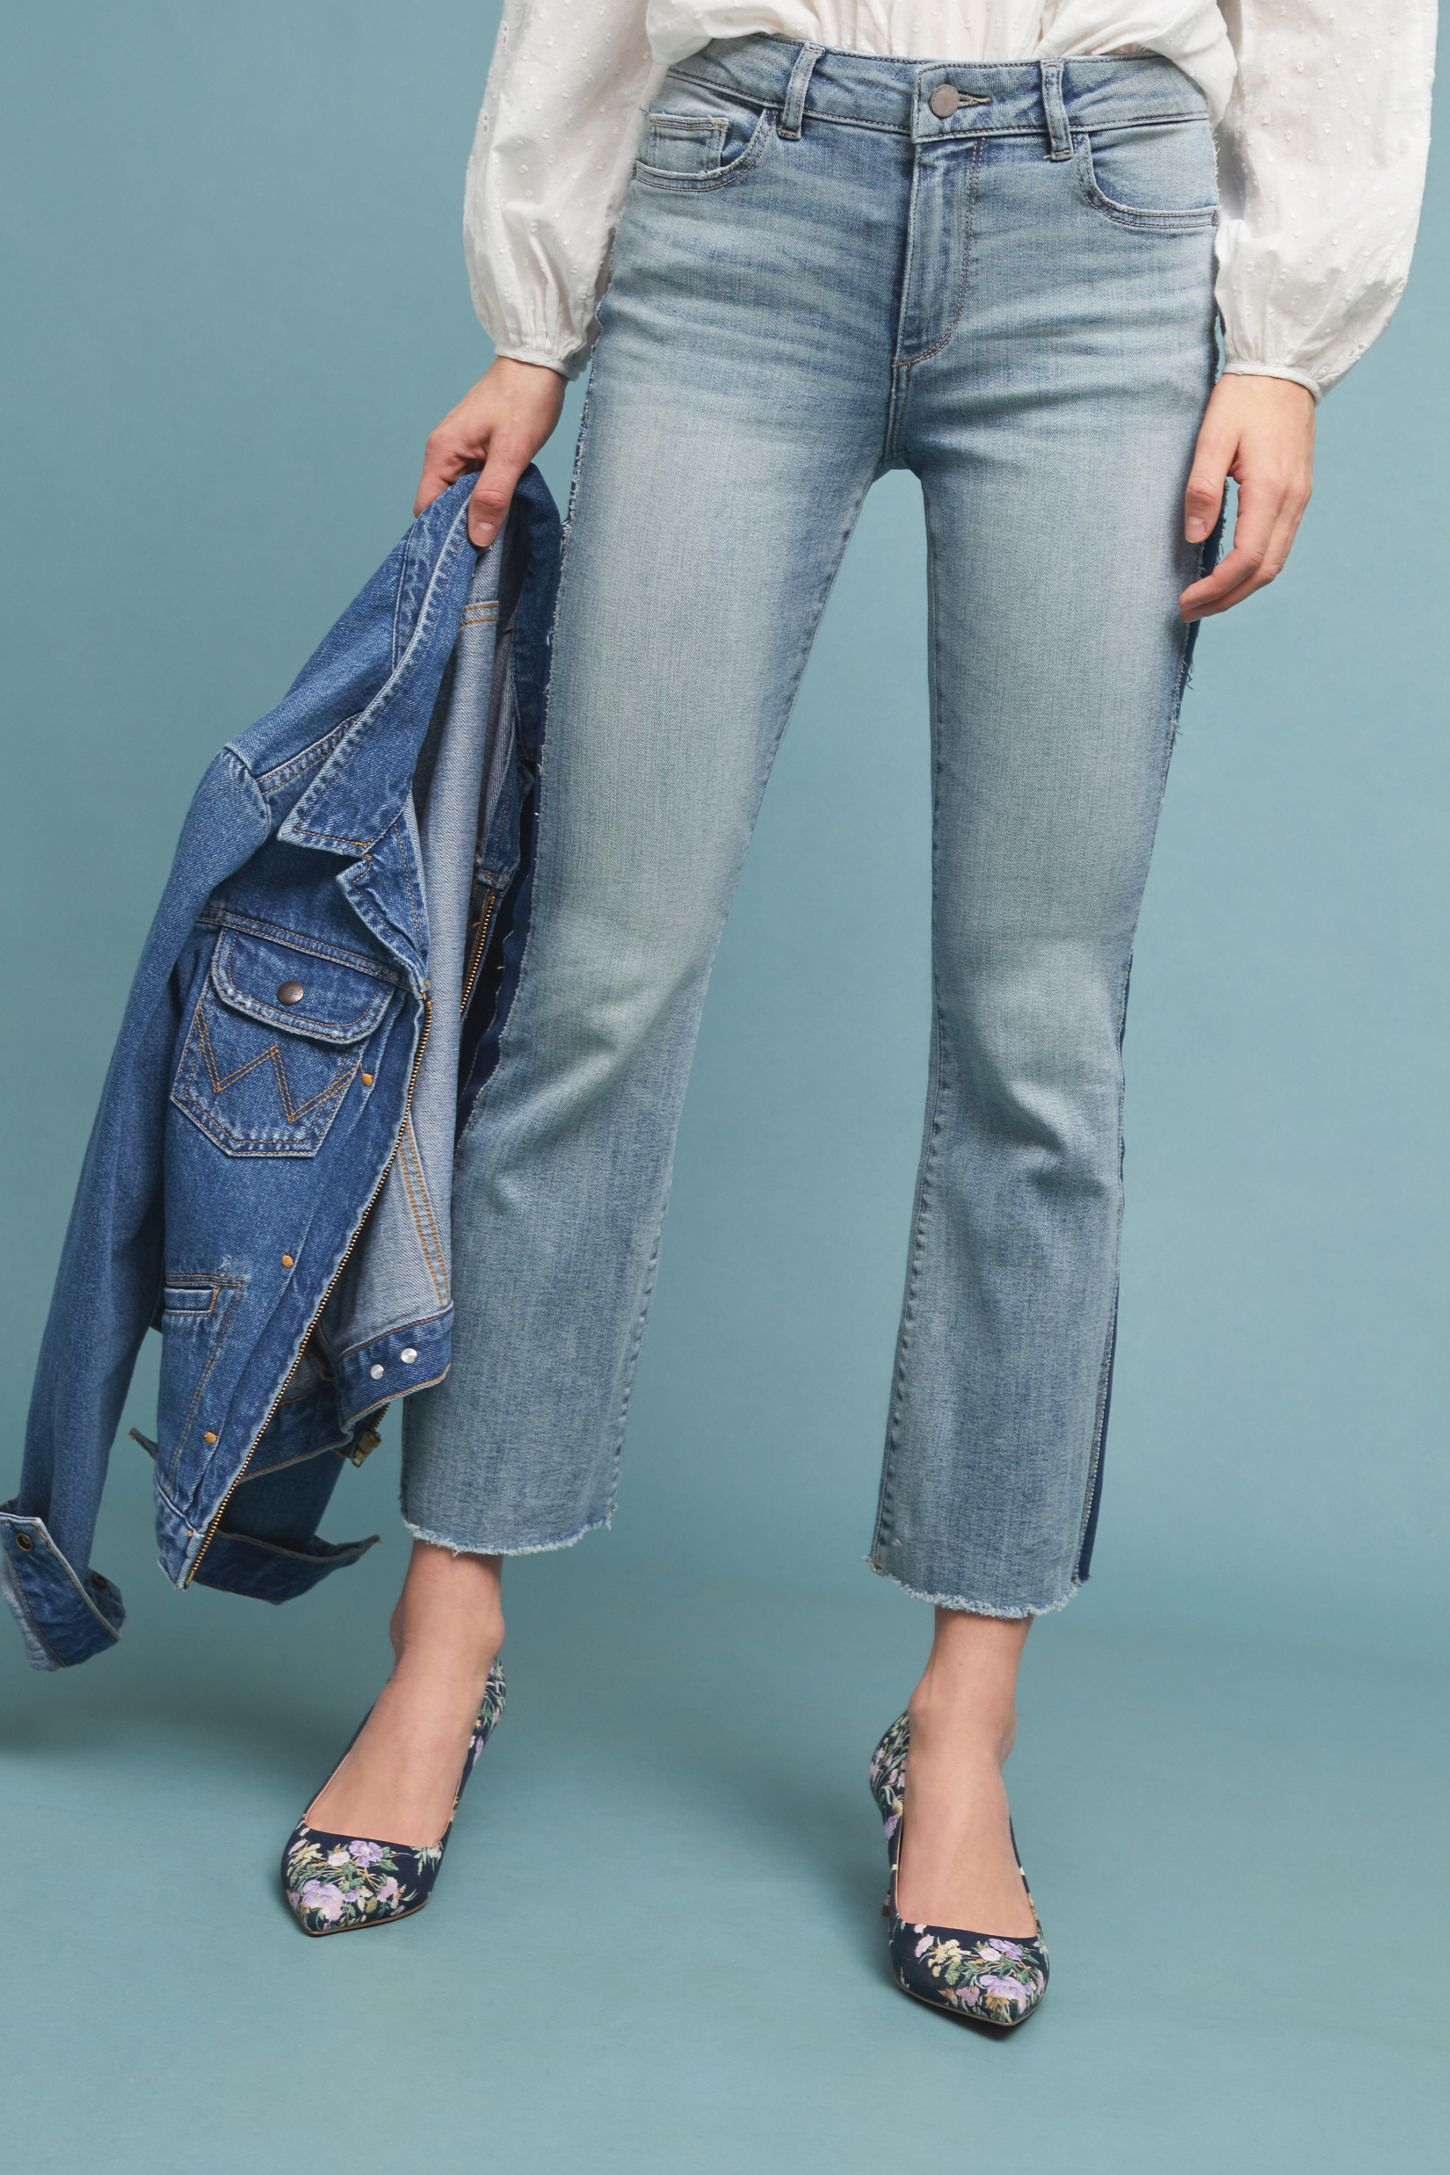 b37a58b0cac DL1961 Bridget Mid-Rise Cropped Bootcut Jeans | Anthropologie